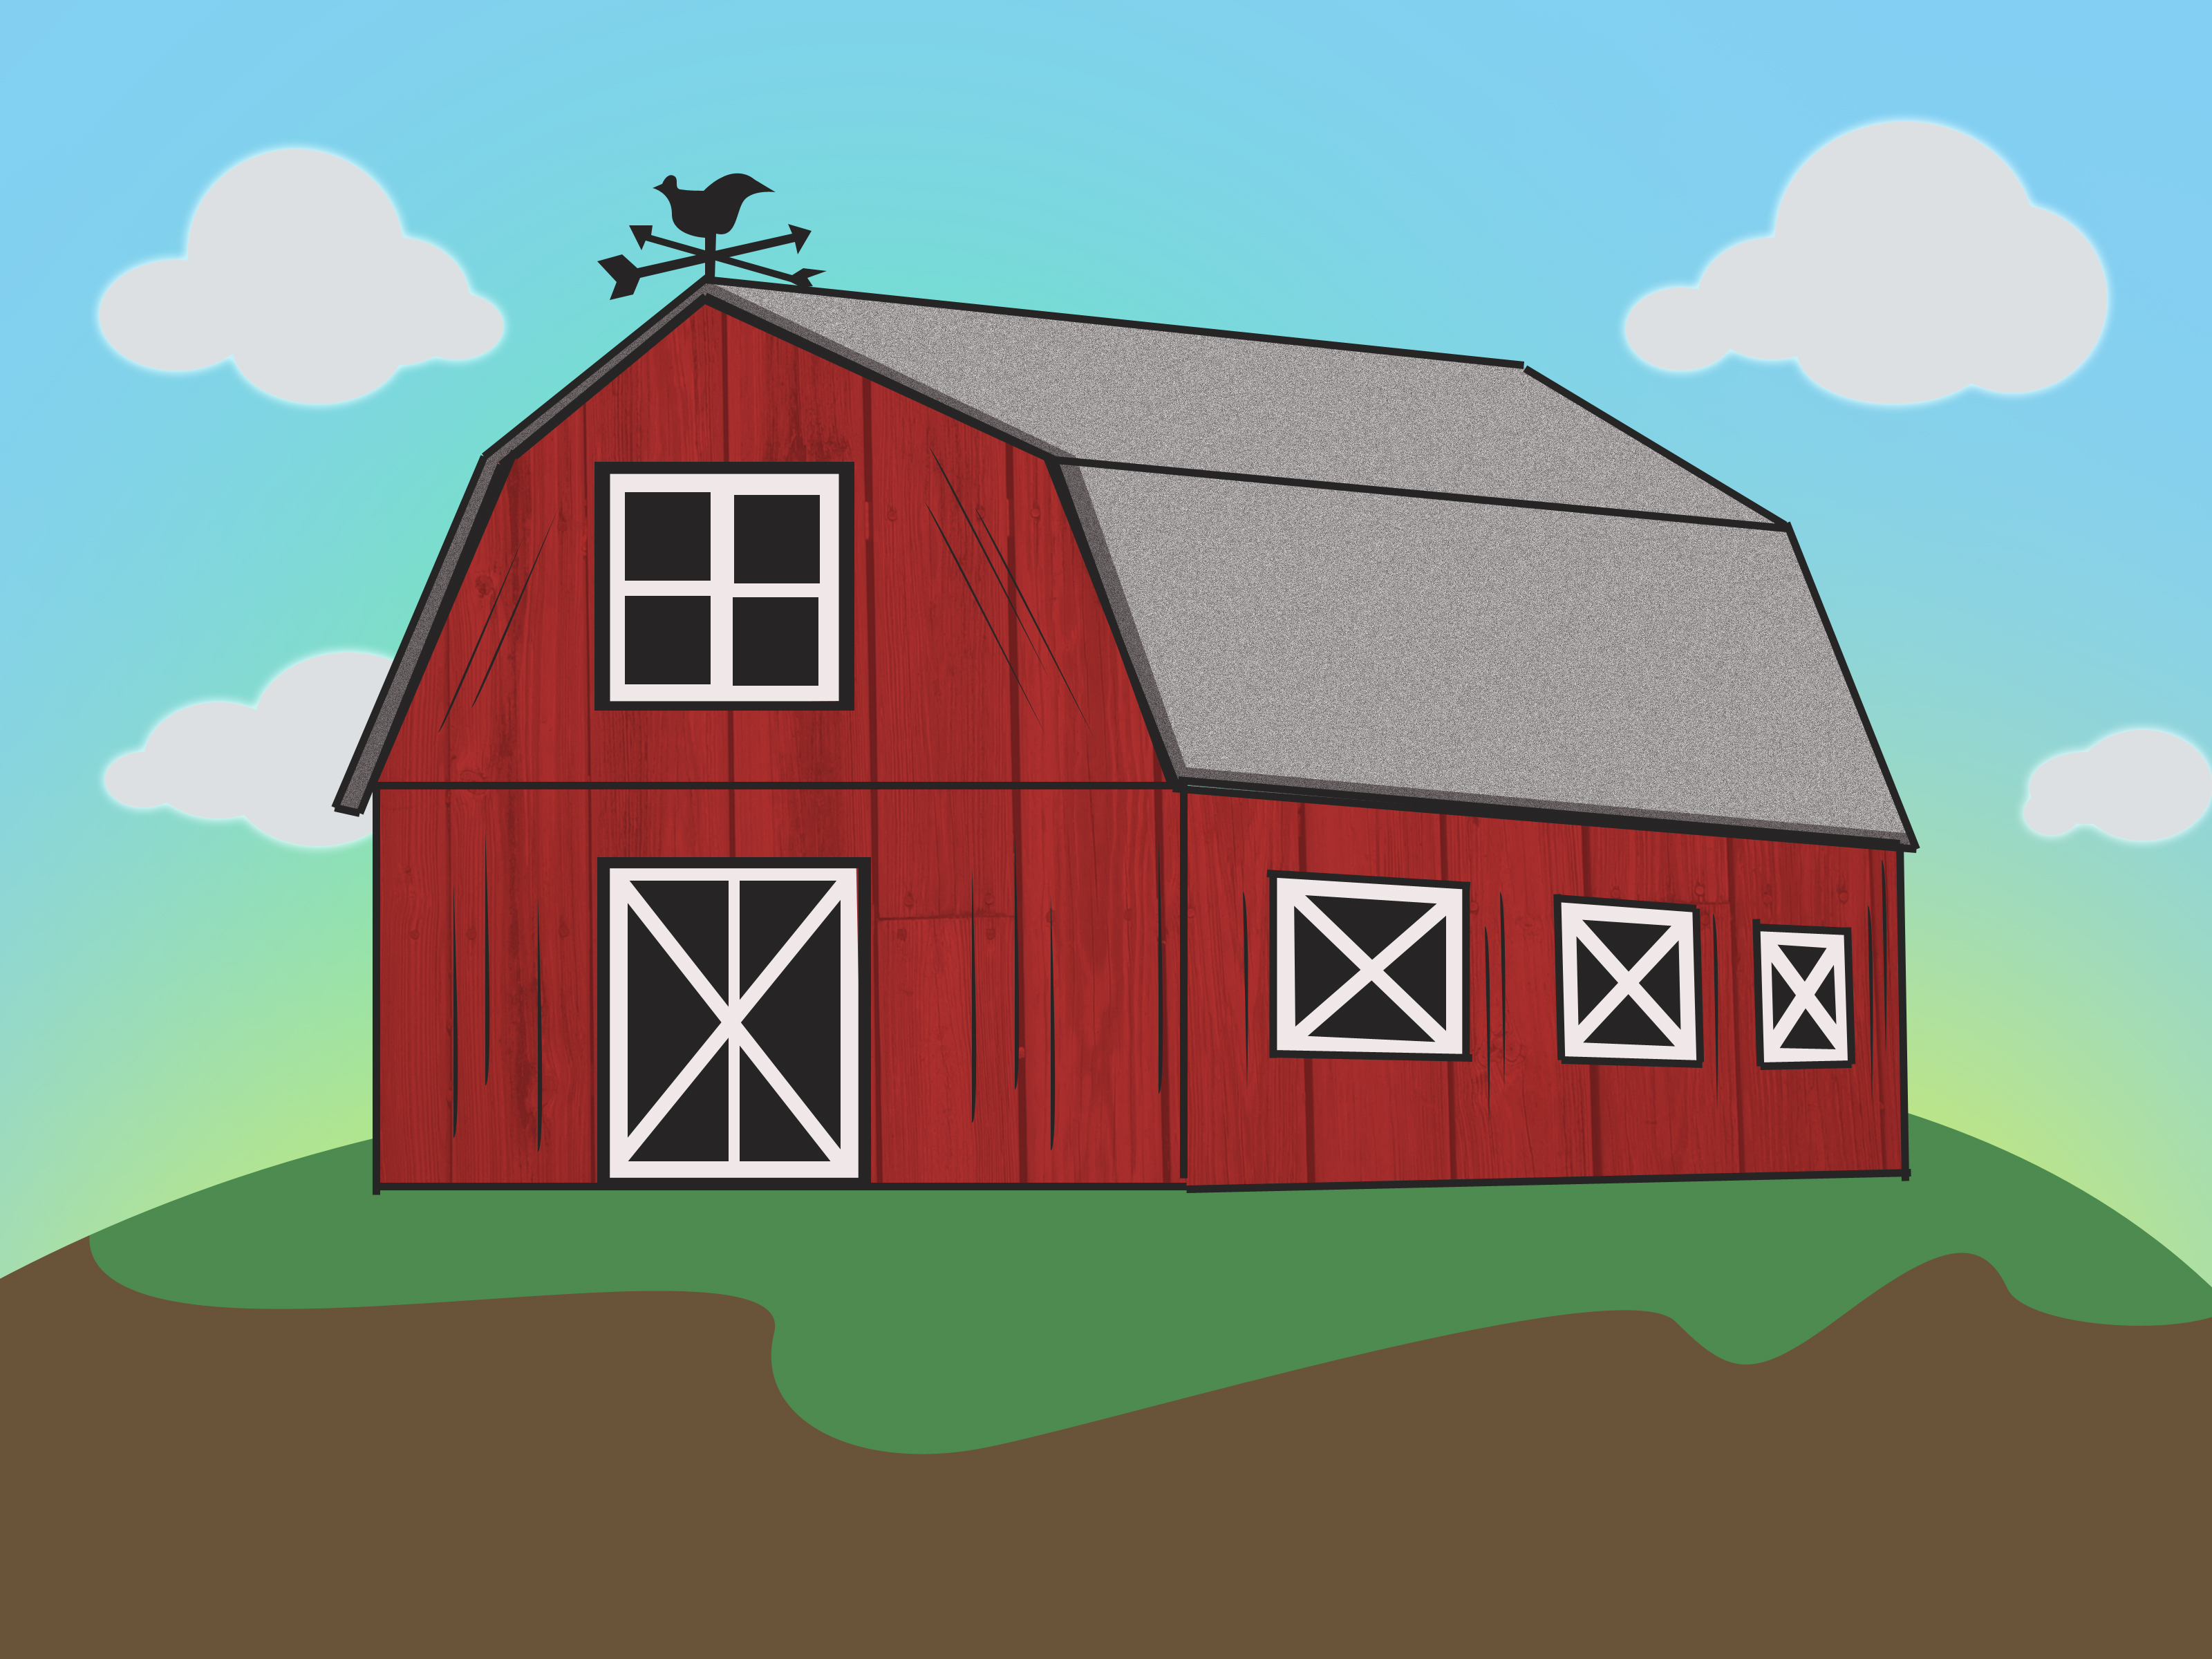 Simple Barn Drawing at GetDrawings.com | Free for personal use ... for Simple Farmhouse Drawing  183qdu